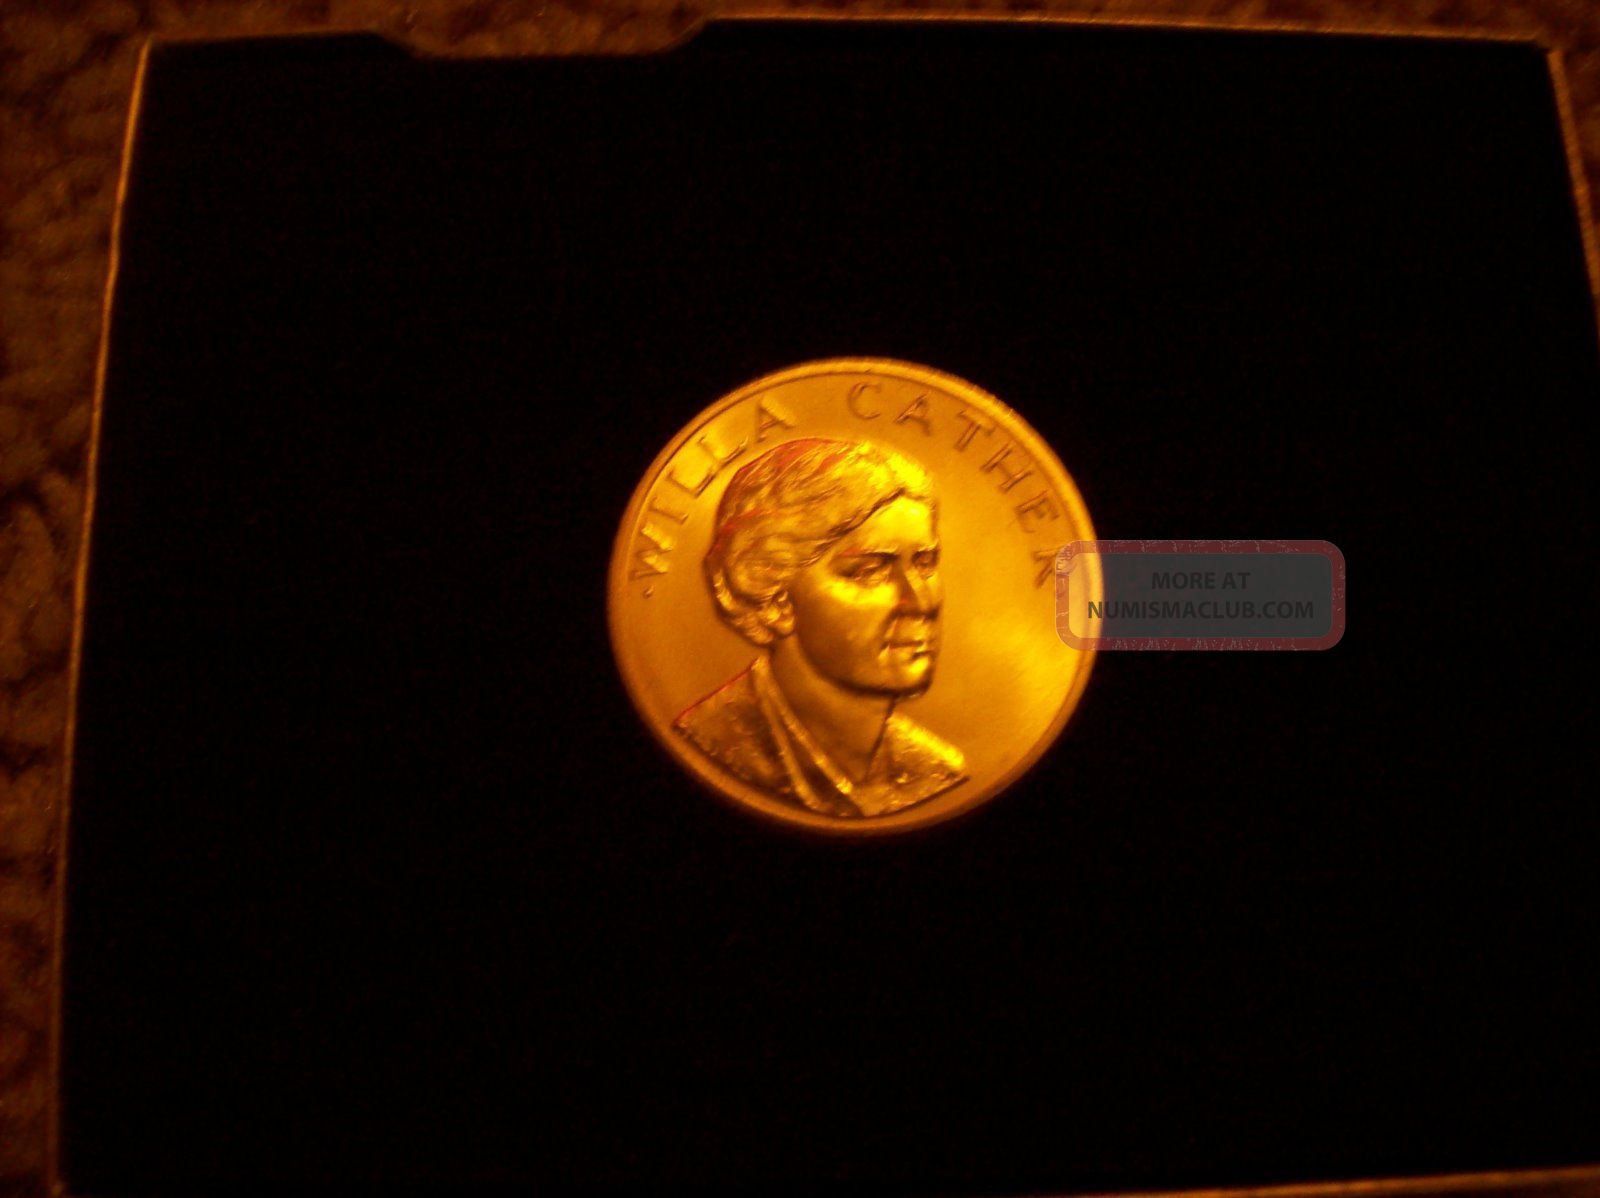 1982 Frank Lloyd Wright American Arts Gold Medallion